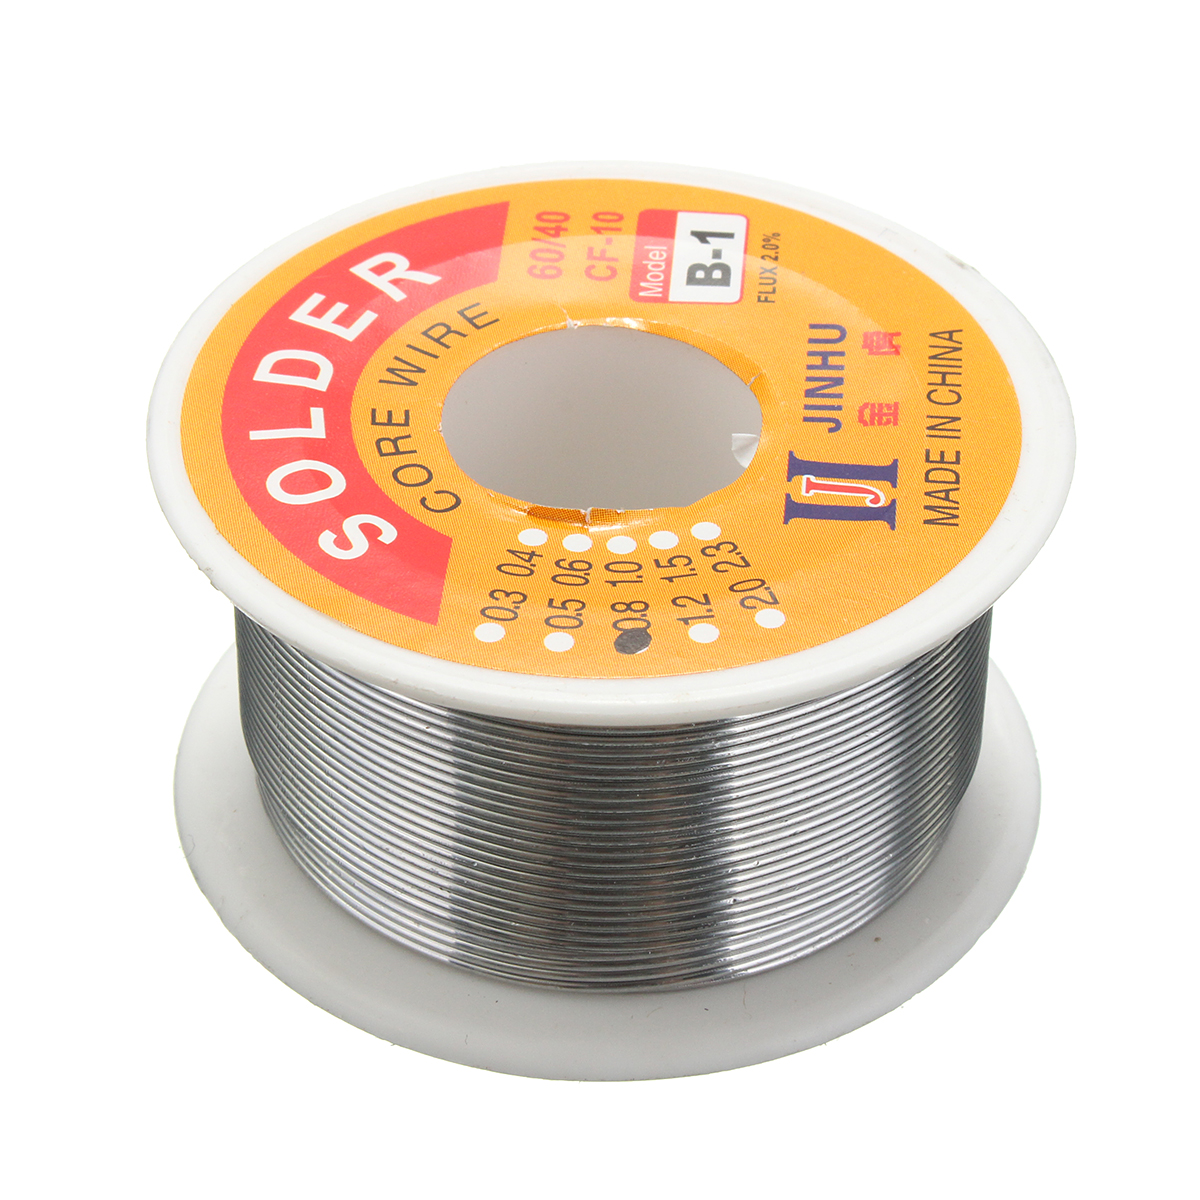 0.8mm 60/40 Tin Lead Solder Wire HQ Flux Multi Rosin Cored Solder for DIY Hobby,  is suitable for computers,  electrical appliances,  mobile phone repair,  electronic welding,  DIY creation.